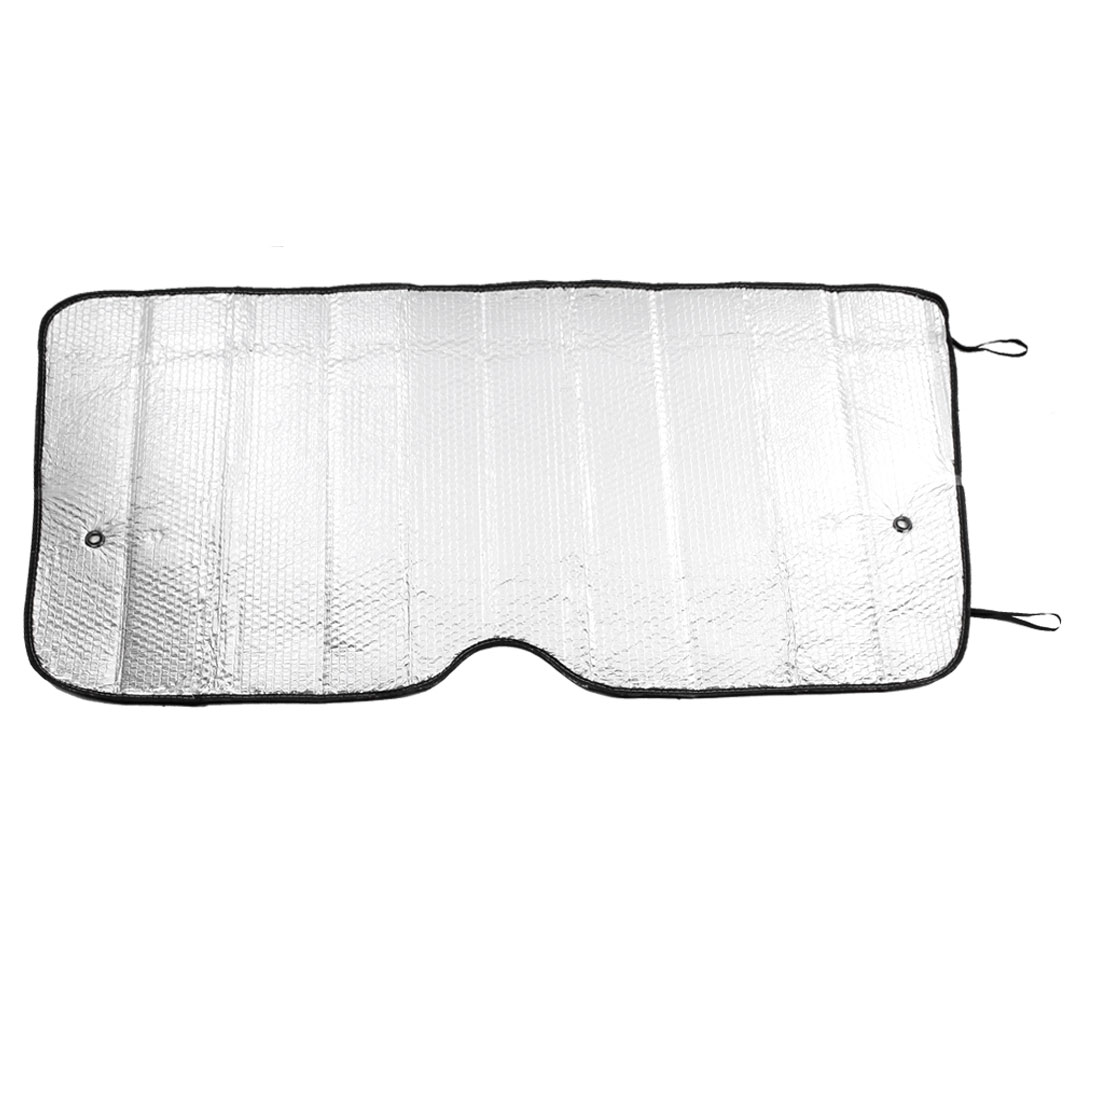 "46"" x 24"" Silver Tone Interior Front Rear Window Sun Shade Sunshield for Car"